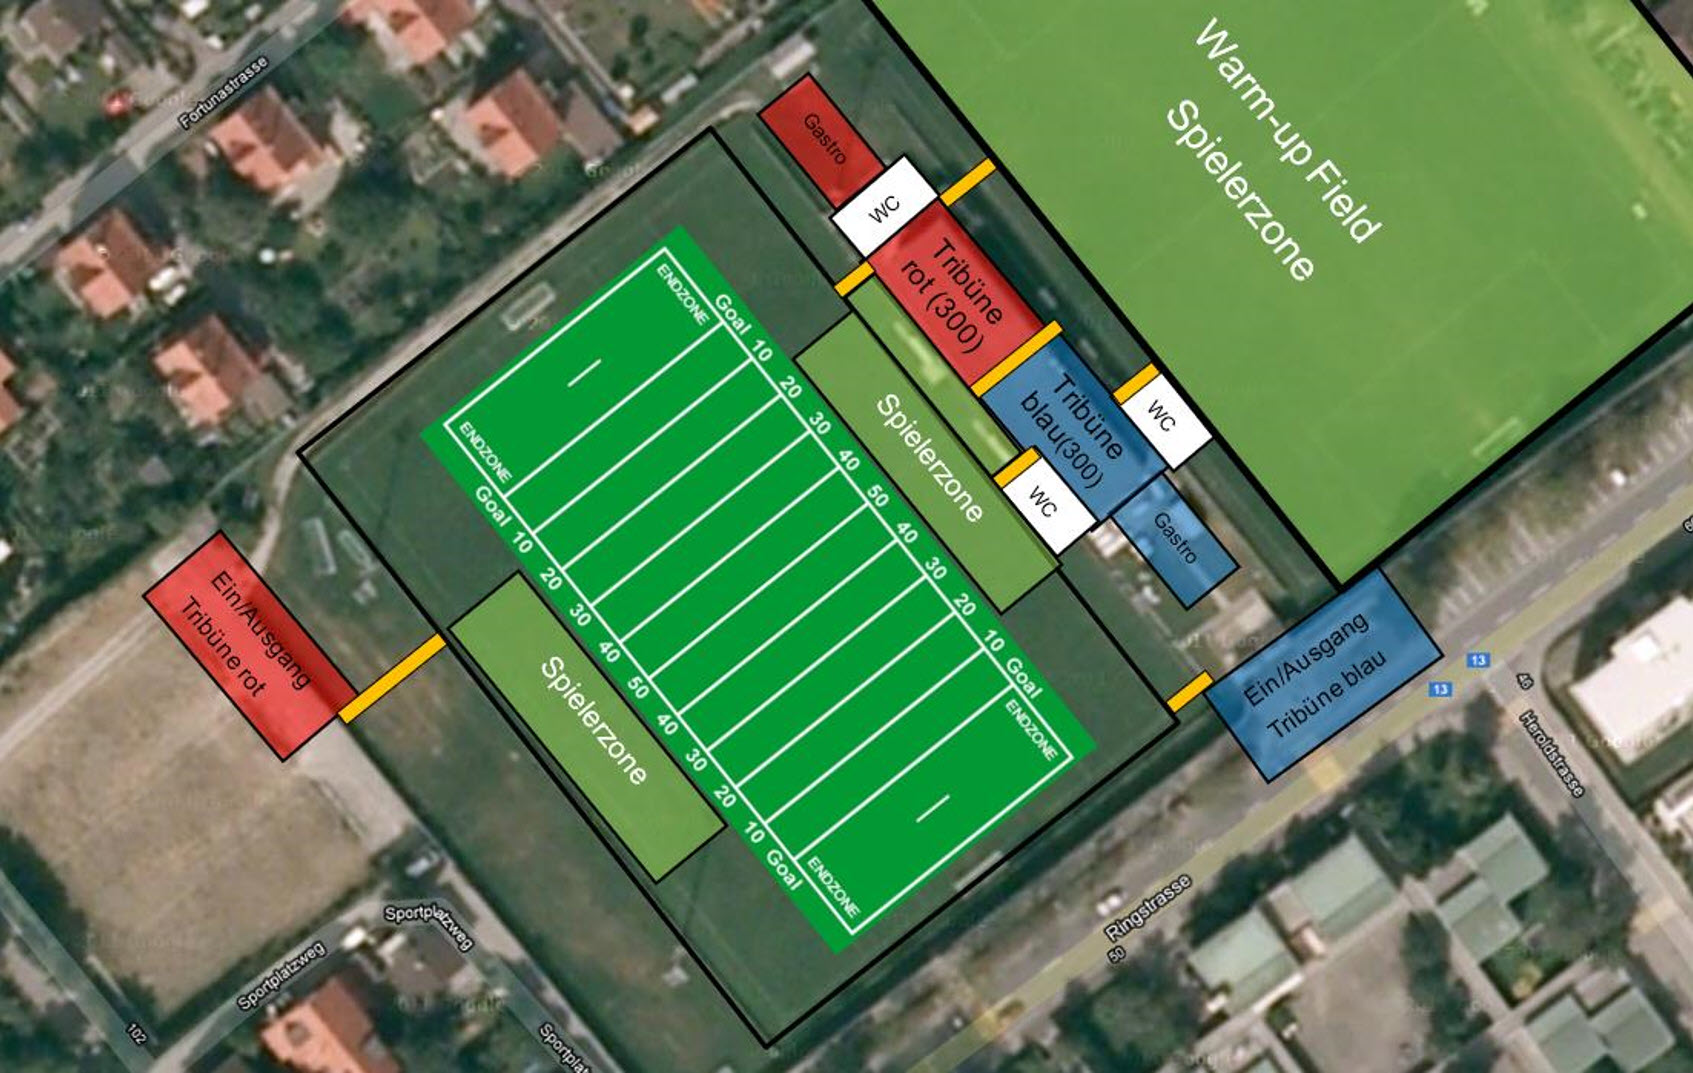 Stadionplan top v3